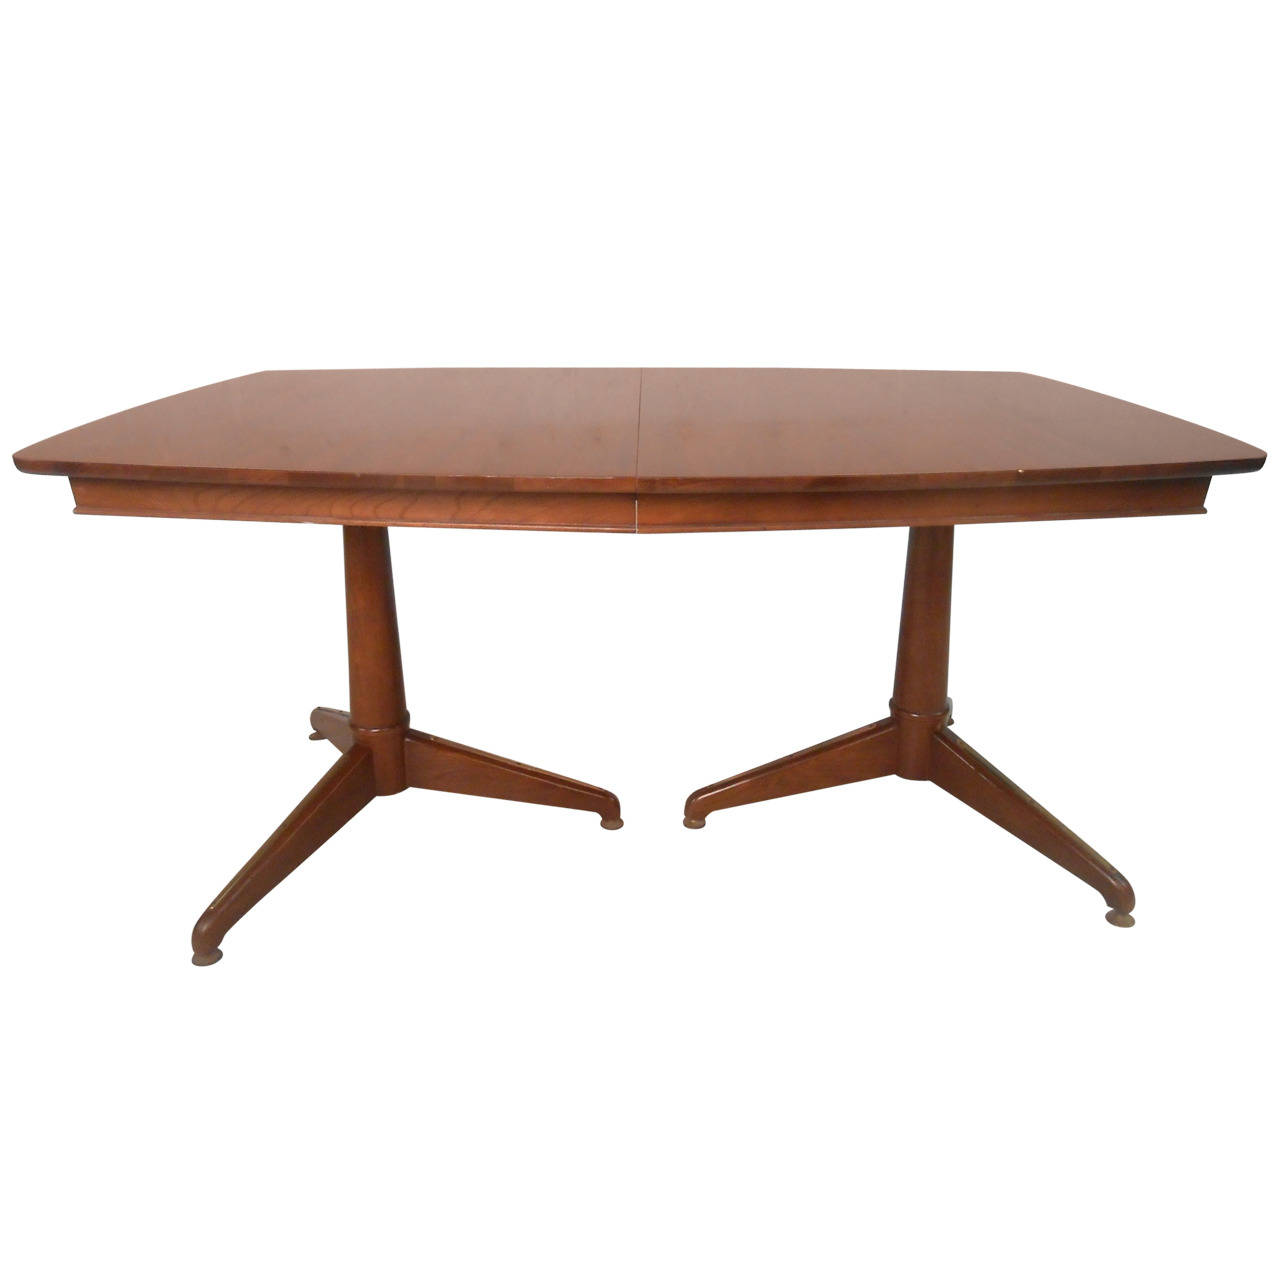 Selection Of Images By Request Mid Century Modern Dining Room Table